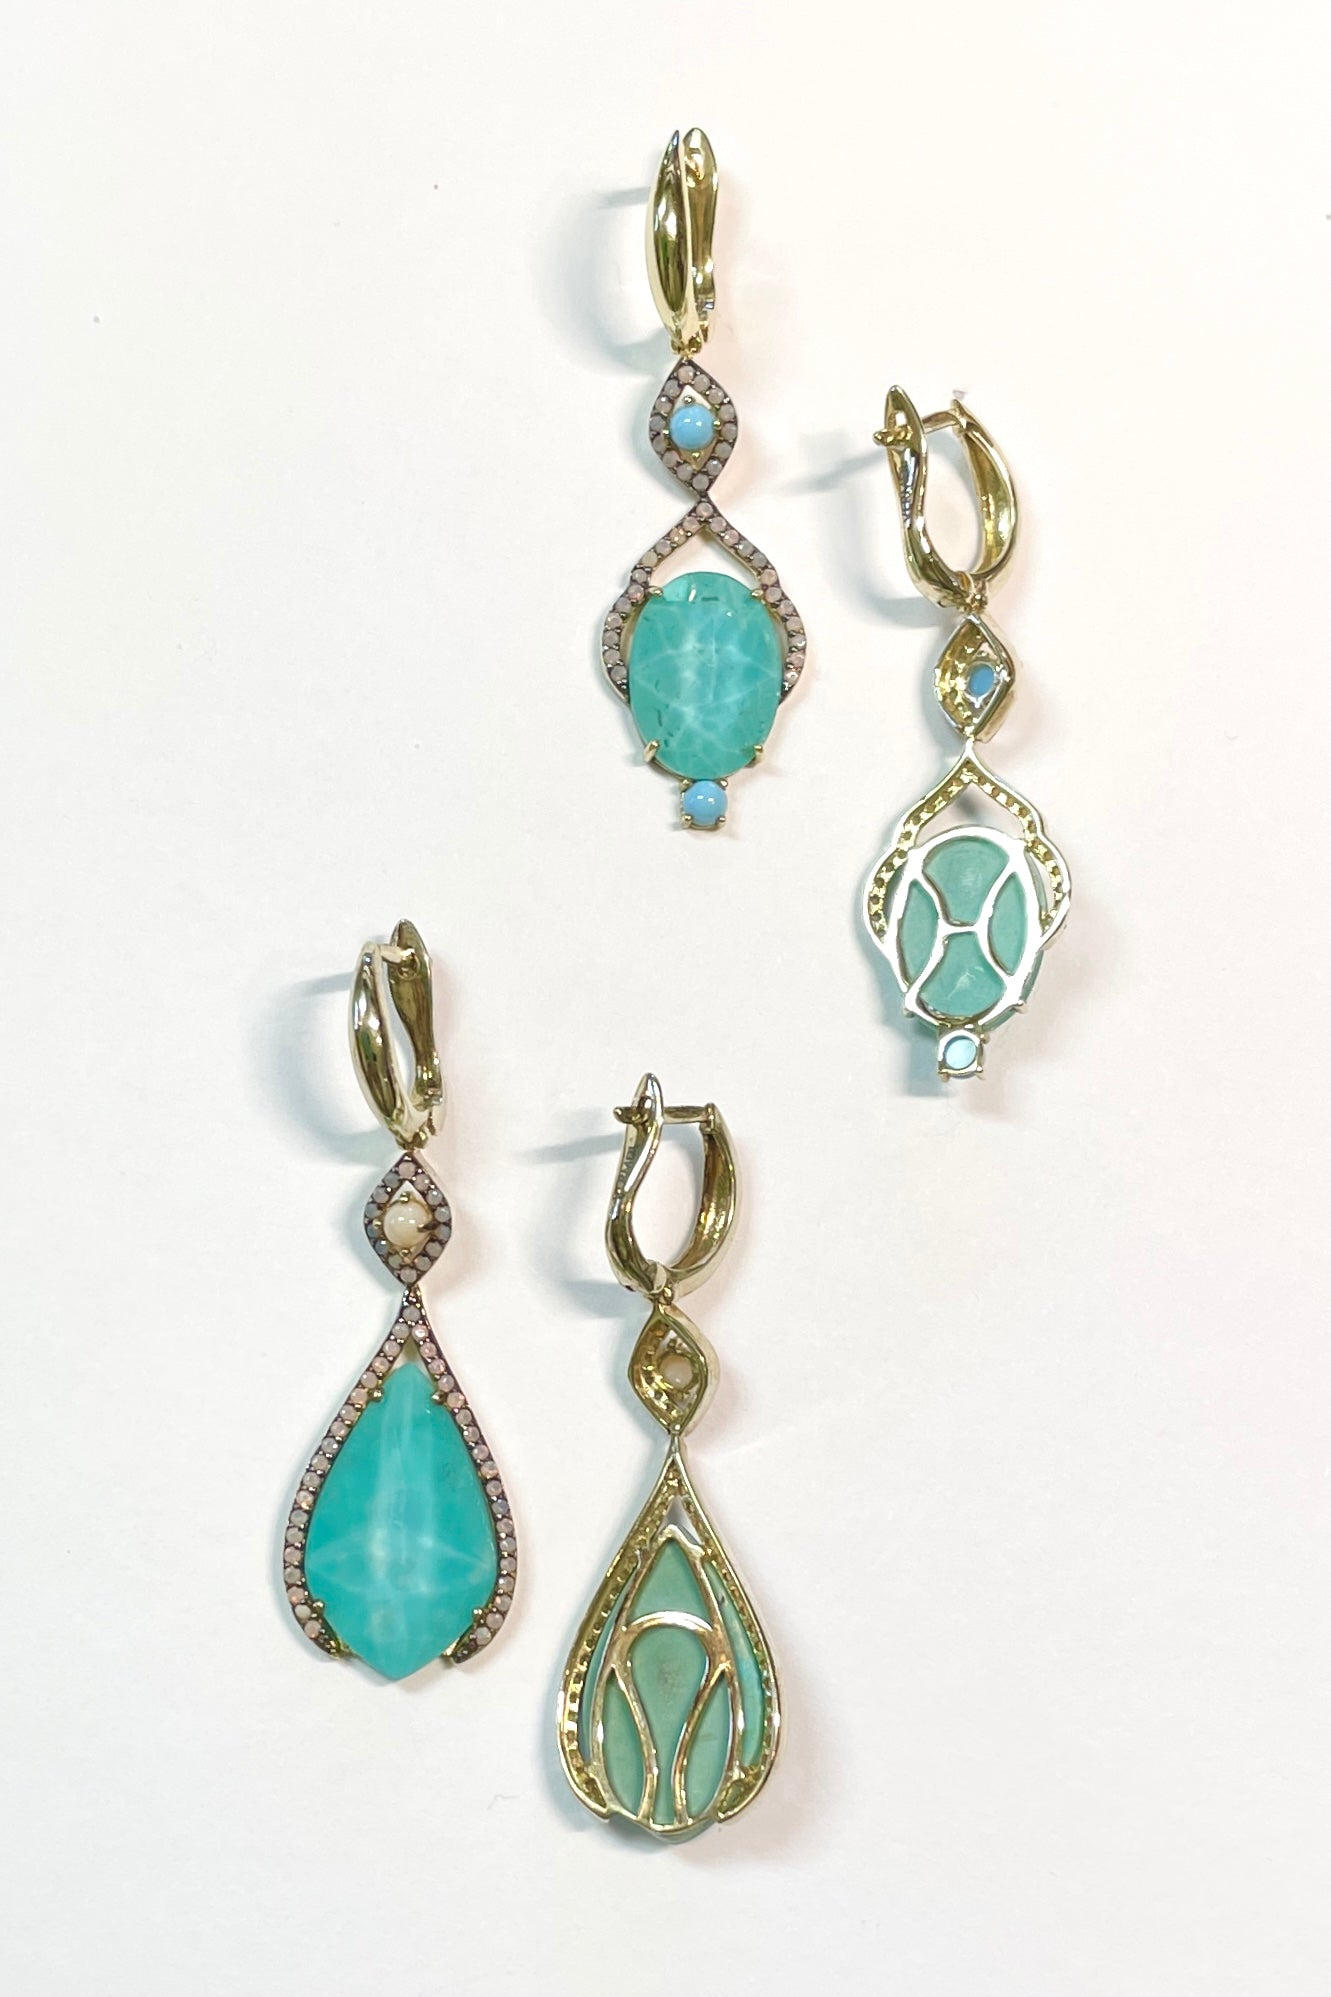 earrings are made from a faceted conceptual doublet made with a sliver of Turquoise gemstone with rock crystal applied to the top give depth and sparkle.